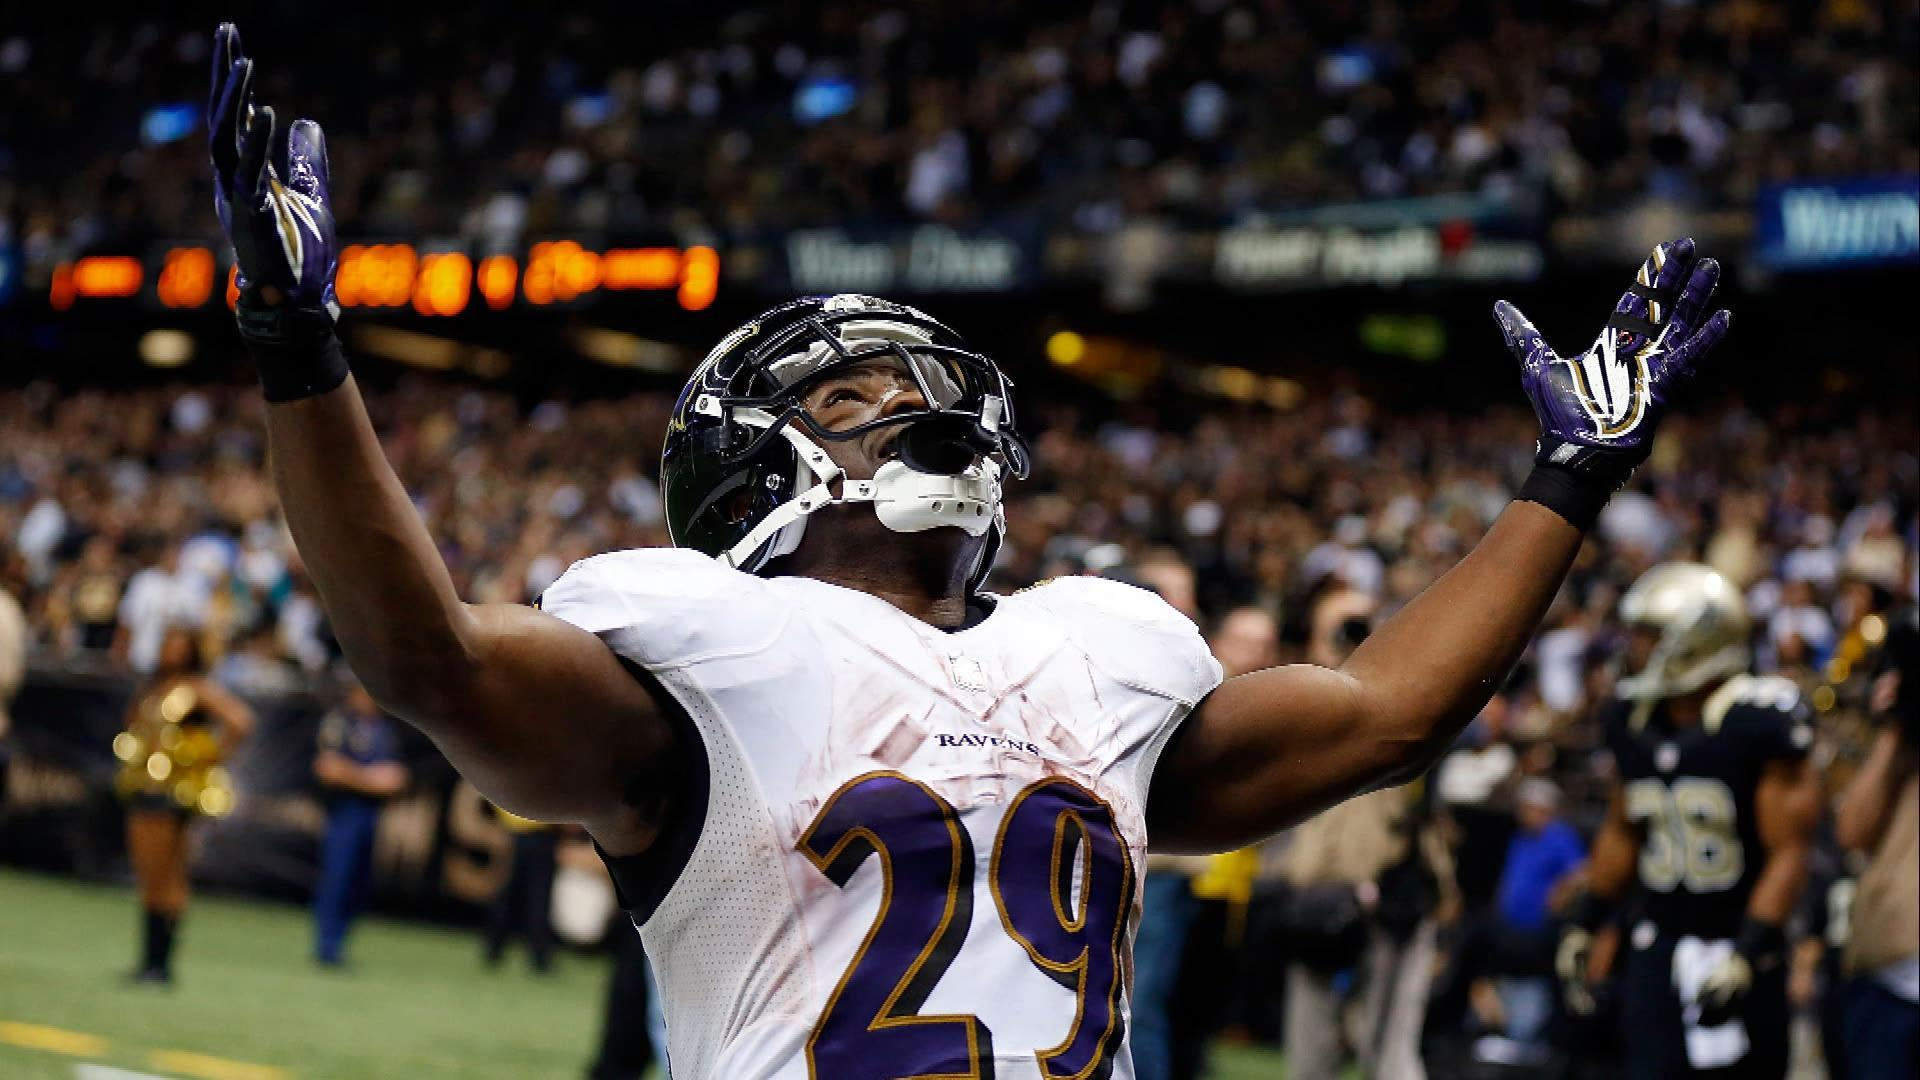 How Justin Forsett pushed himself to succeed in NFL